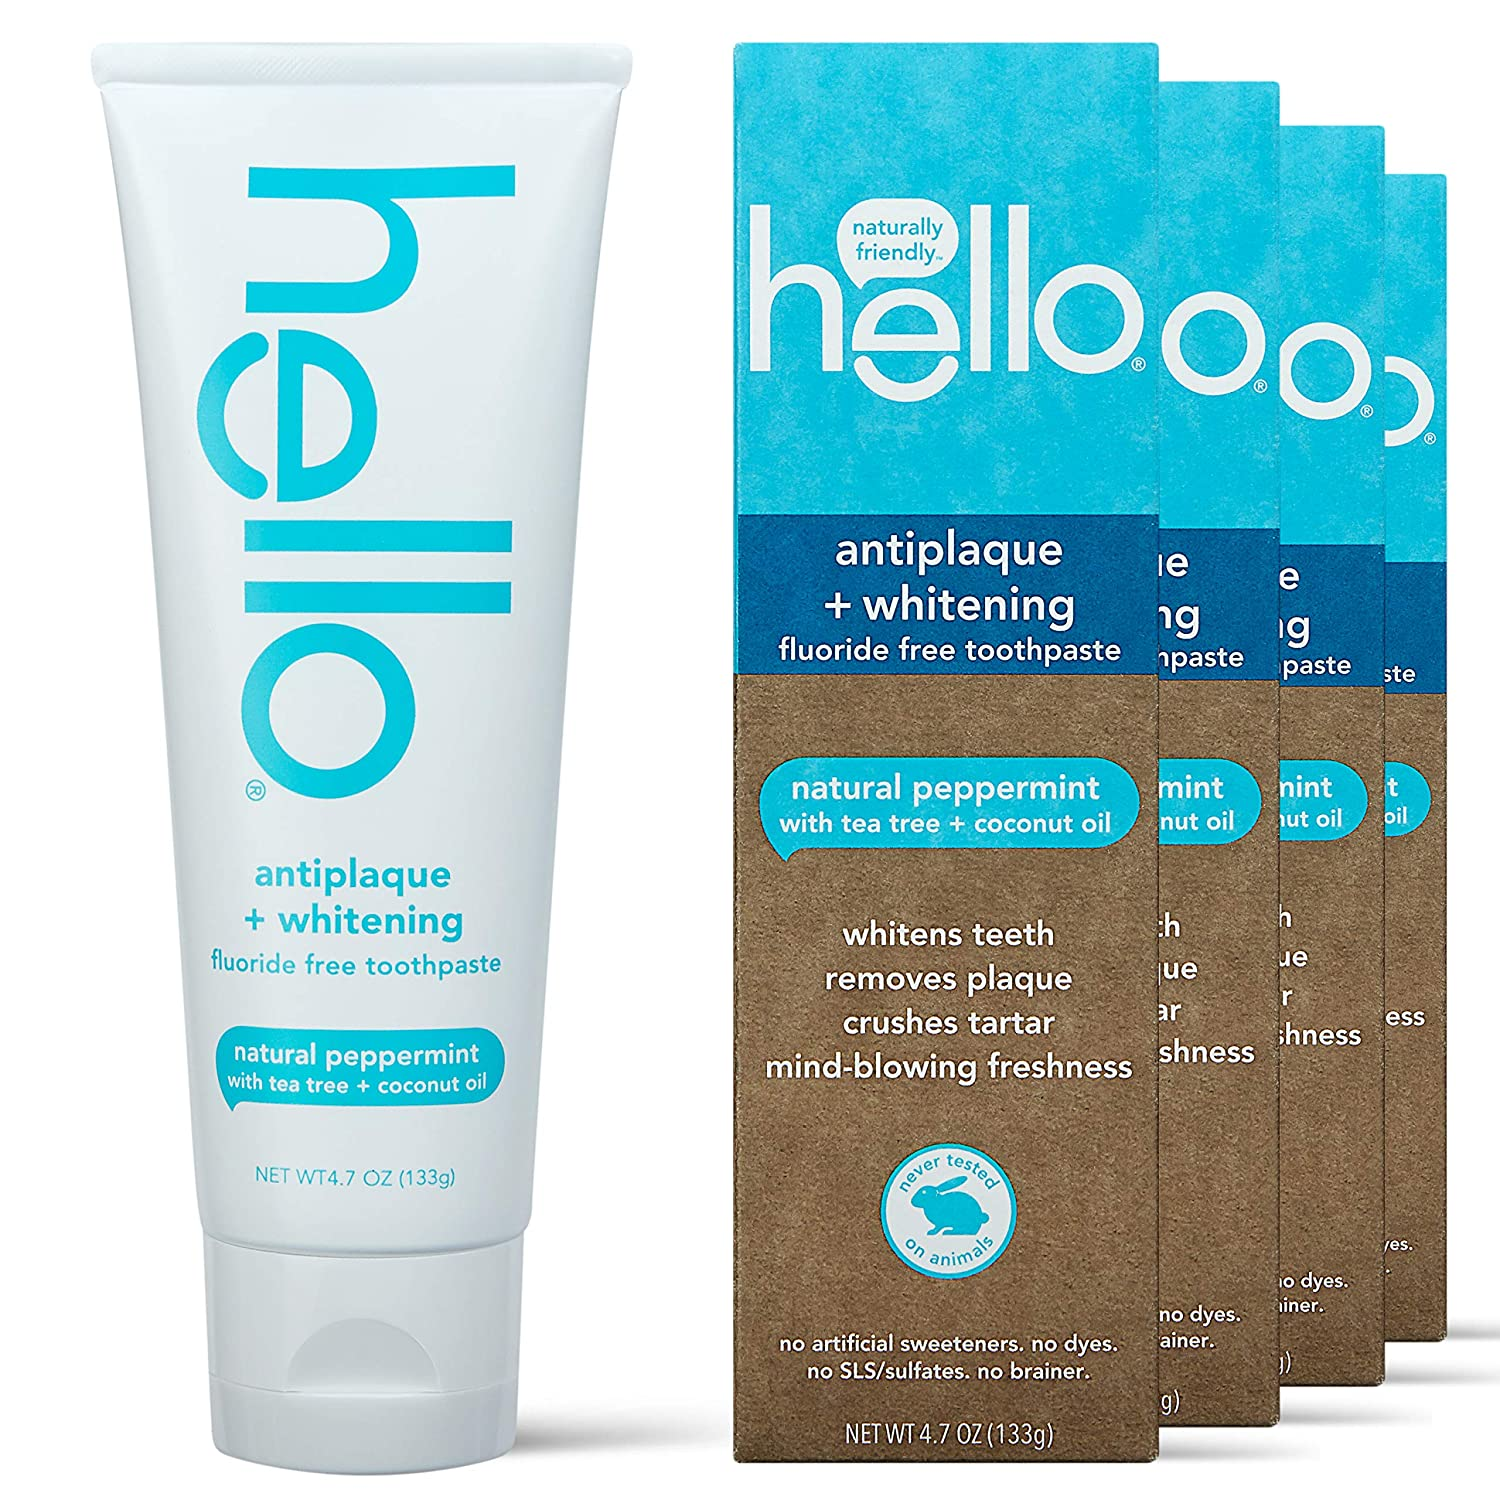 Hello Antiplaque and Whitening Toothpaste Fluoride Raleigh Mall Max 90% OFF Natural Free